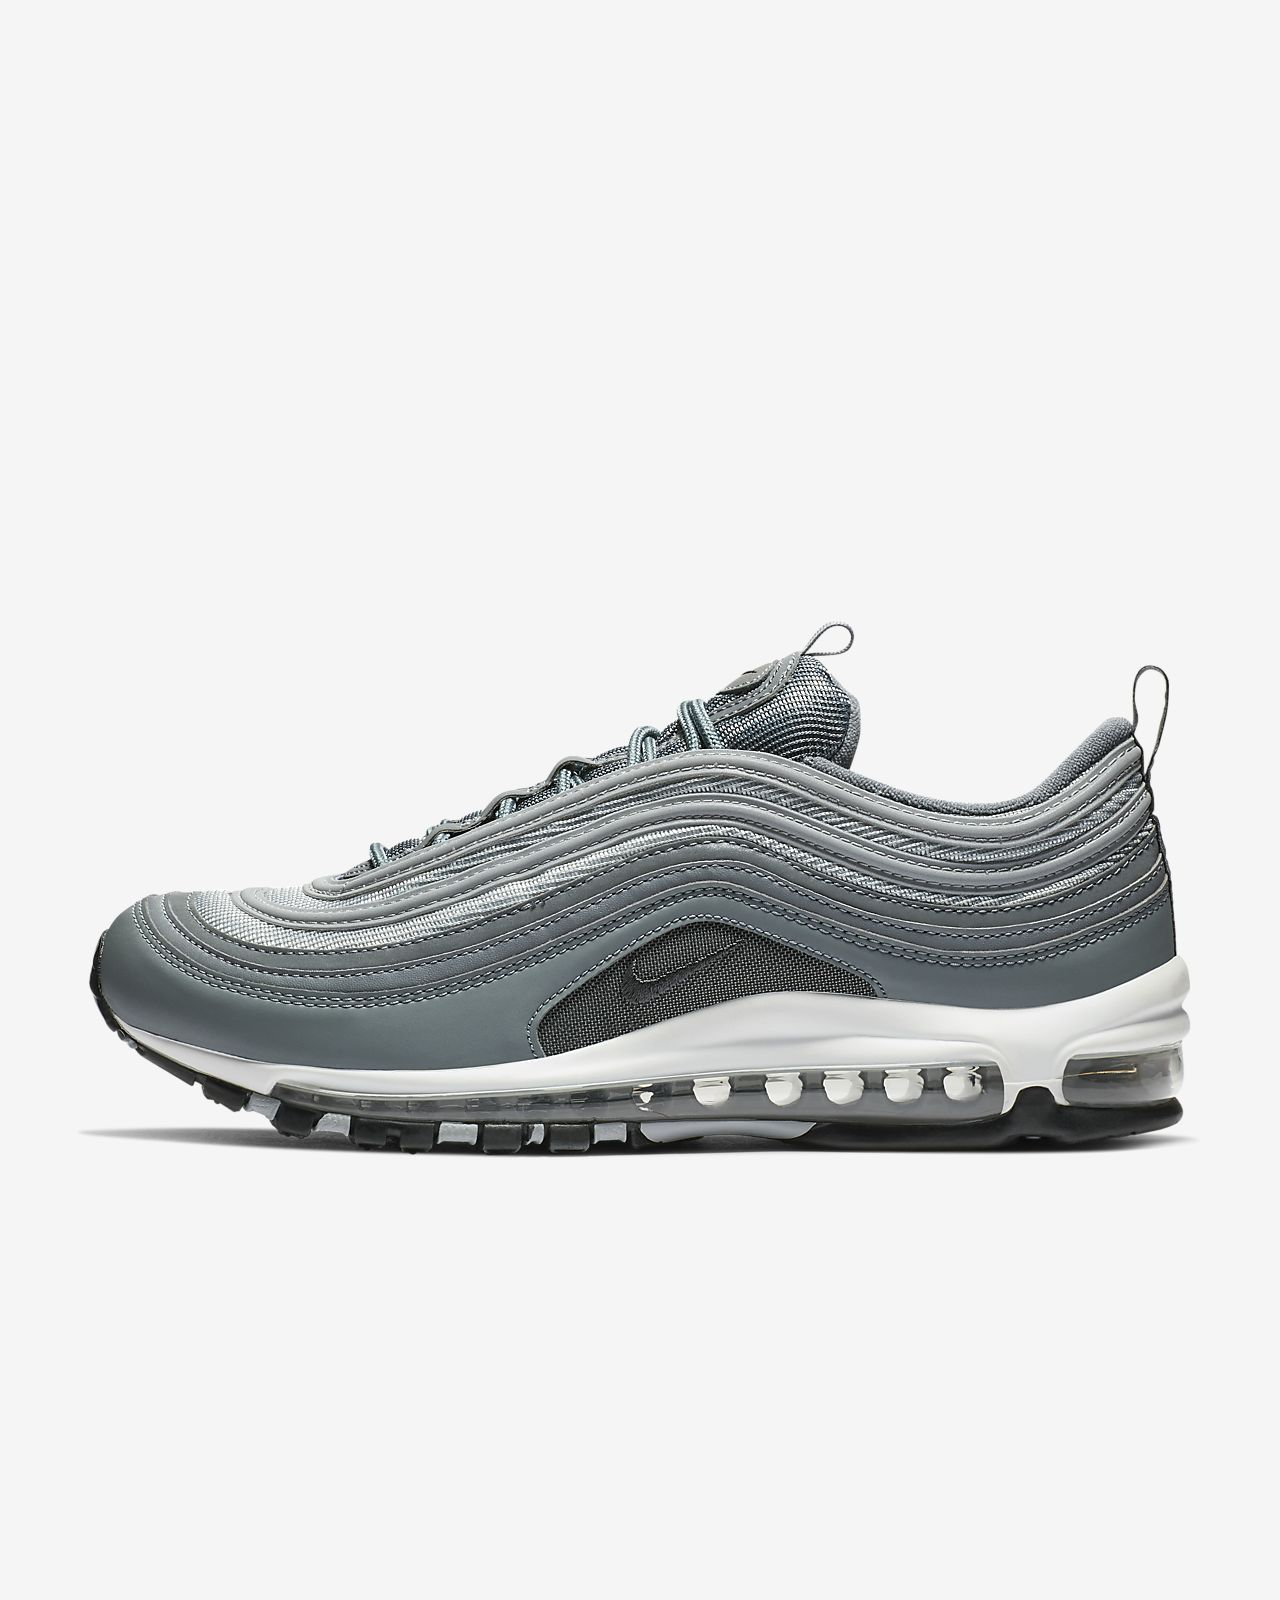 designer fashion e0324 217d2 ... Buty męskie Nike Air Max 97 Essential